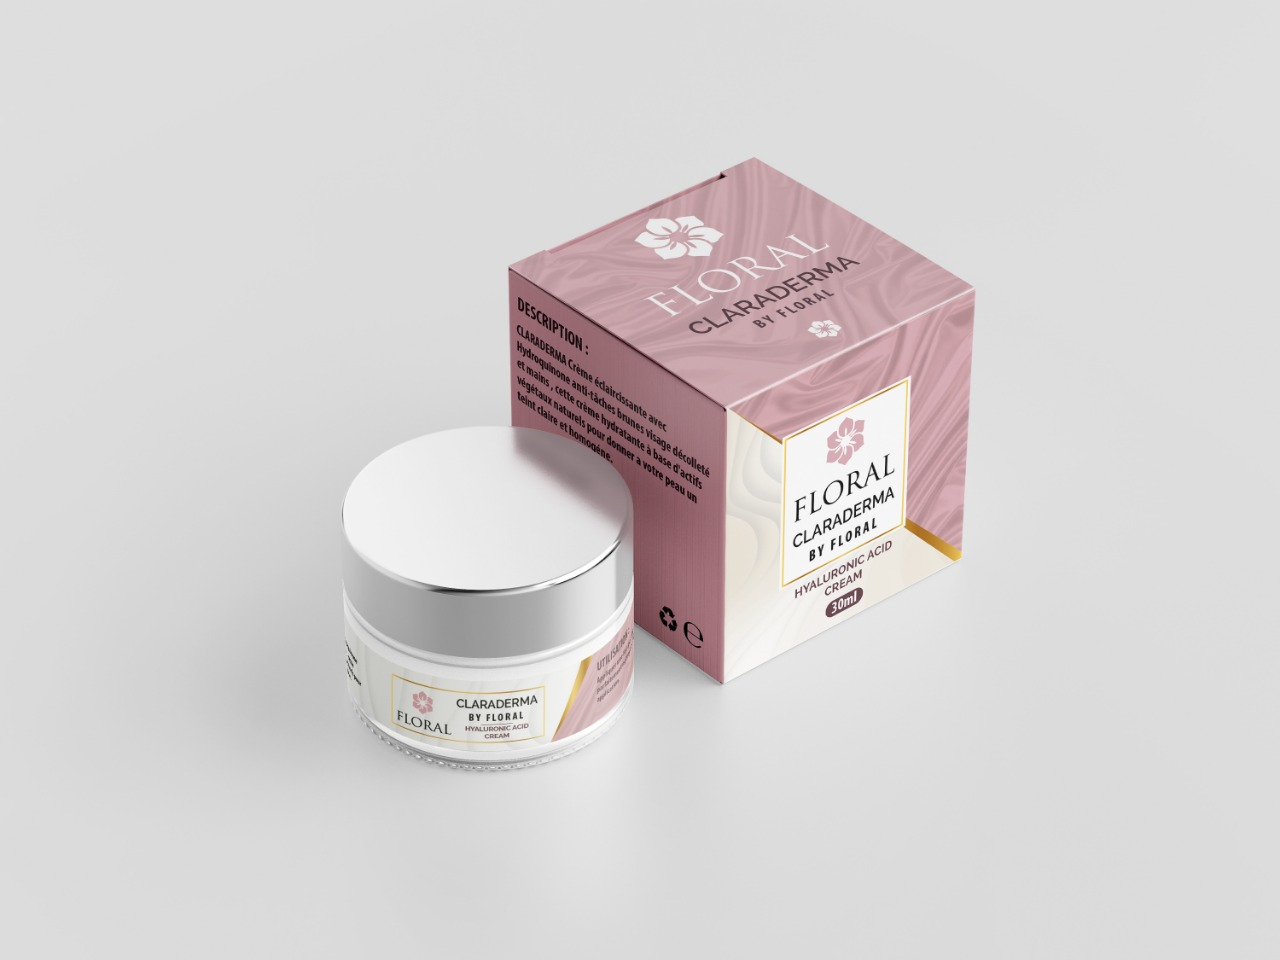 Crème Claraderma by floral , effet botox a base d'acide hyaluronic1